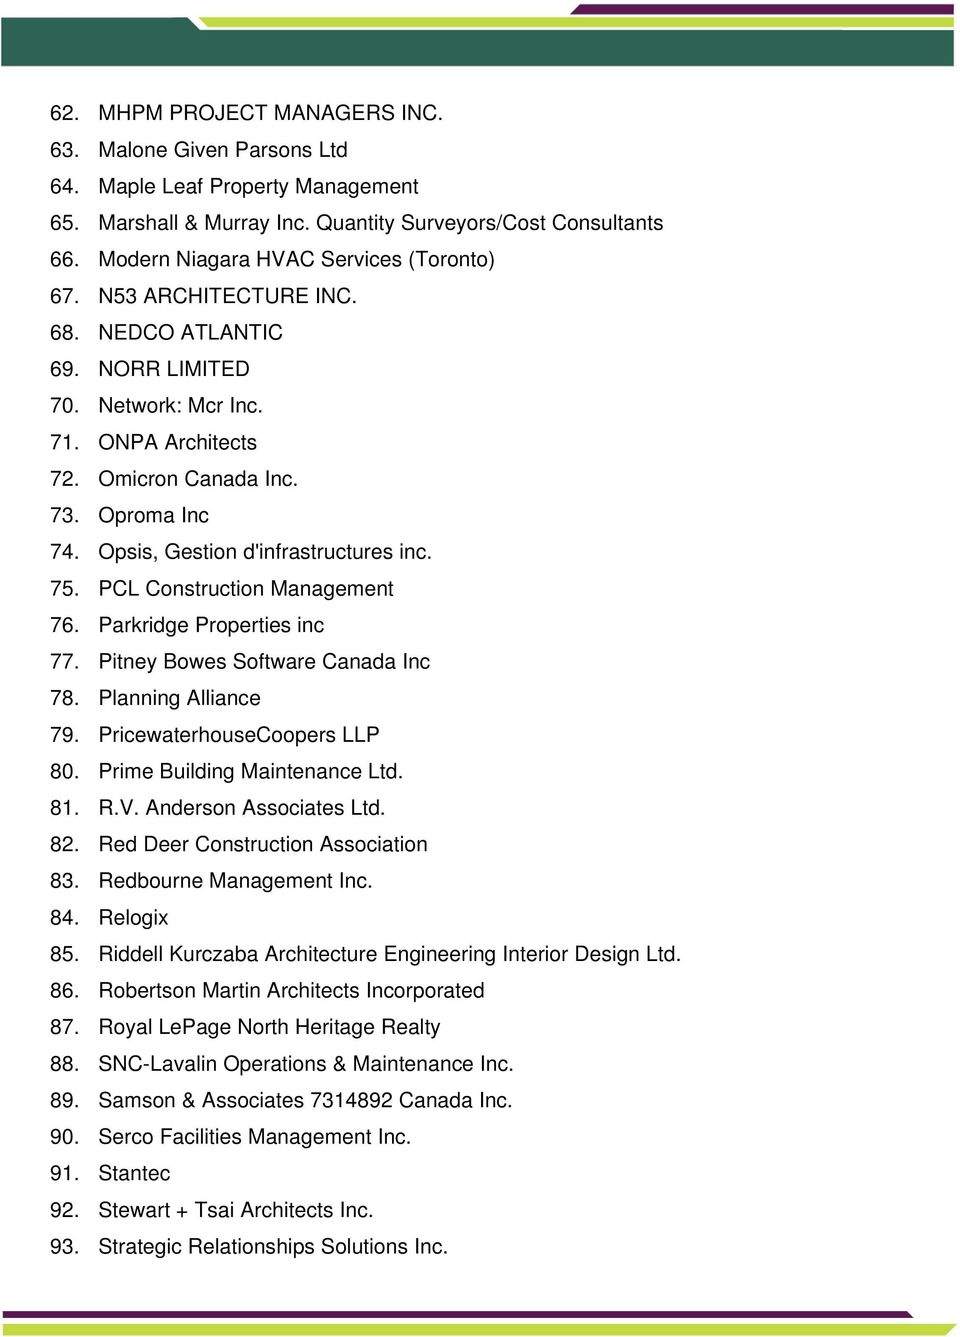 Opsis, Gestion d'infrastructures inc. 75. PCL Construction Management 76. Parkridge Properties inc 77. Pitney Bowes Software Canada Inc 78. Planning Alliance 79. PricewaterhouseCoopers LLP 80.